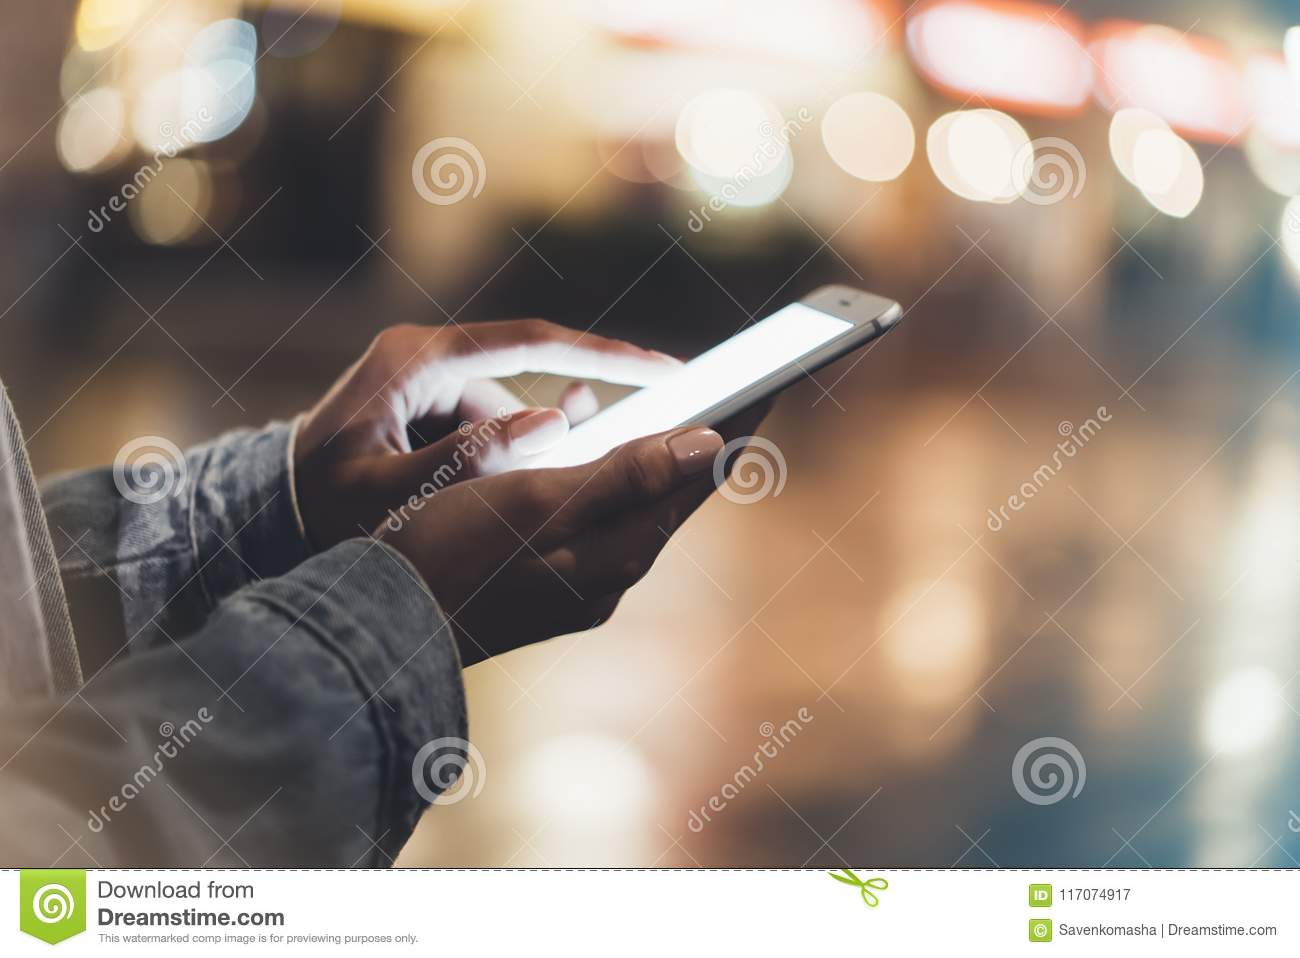 Girl pointing finger on screen smartphone on background illumination bokeh color light in night atmospheric city, hipster using in